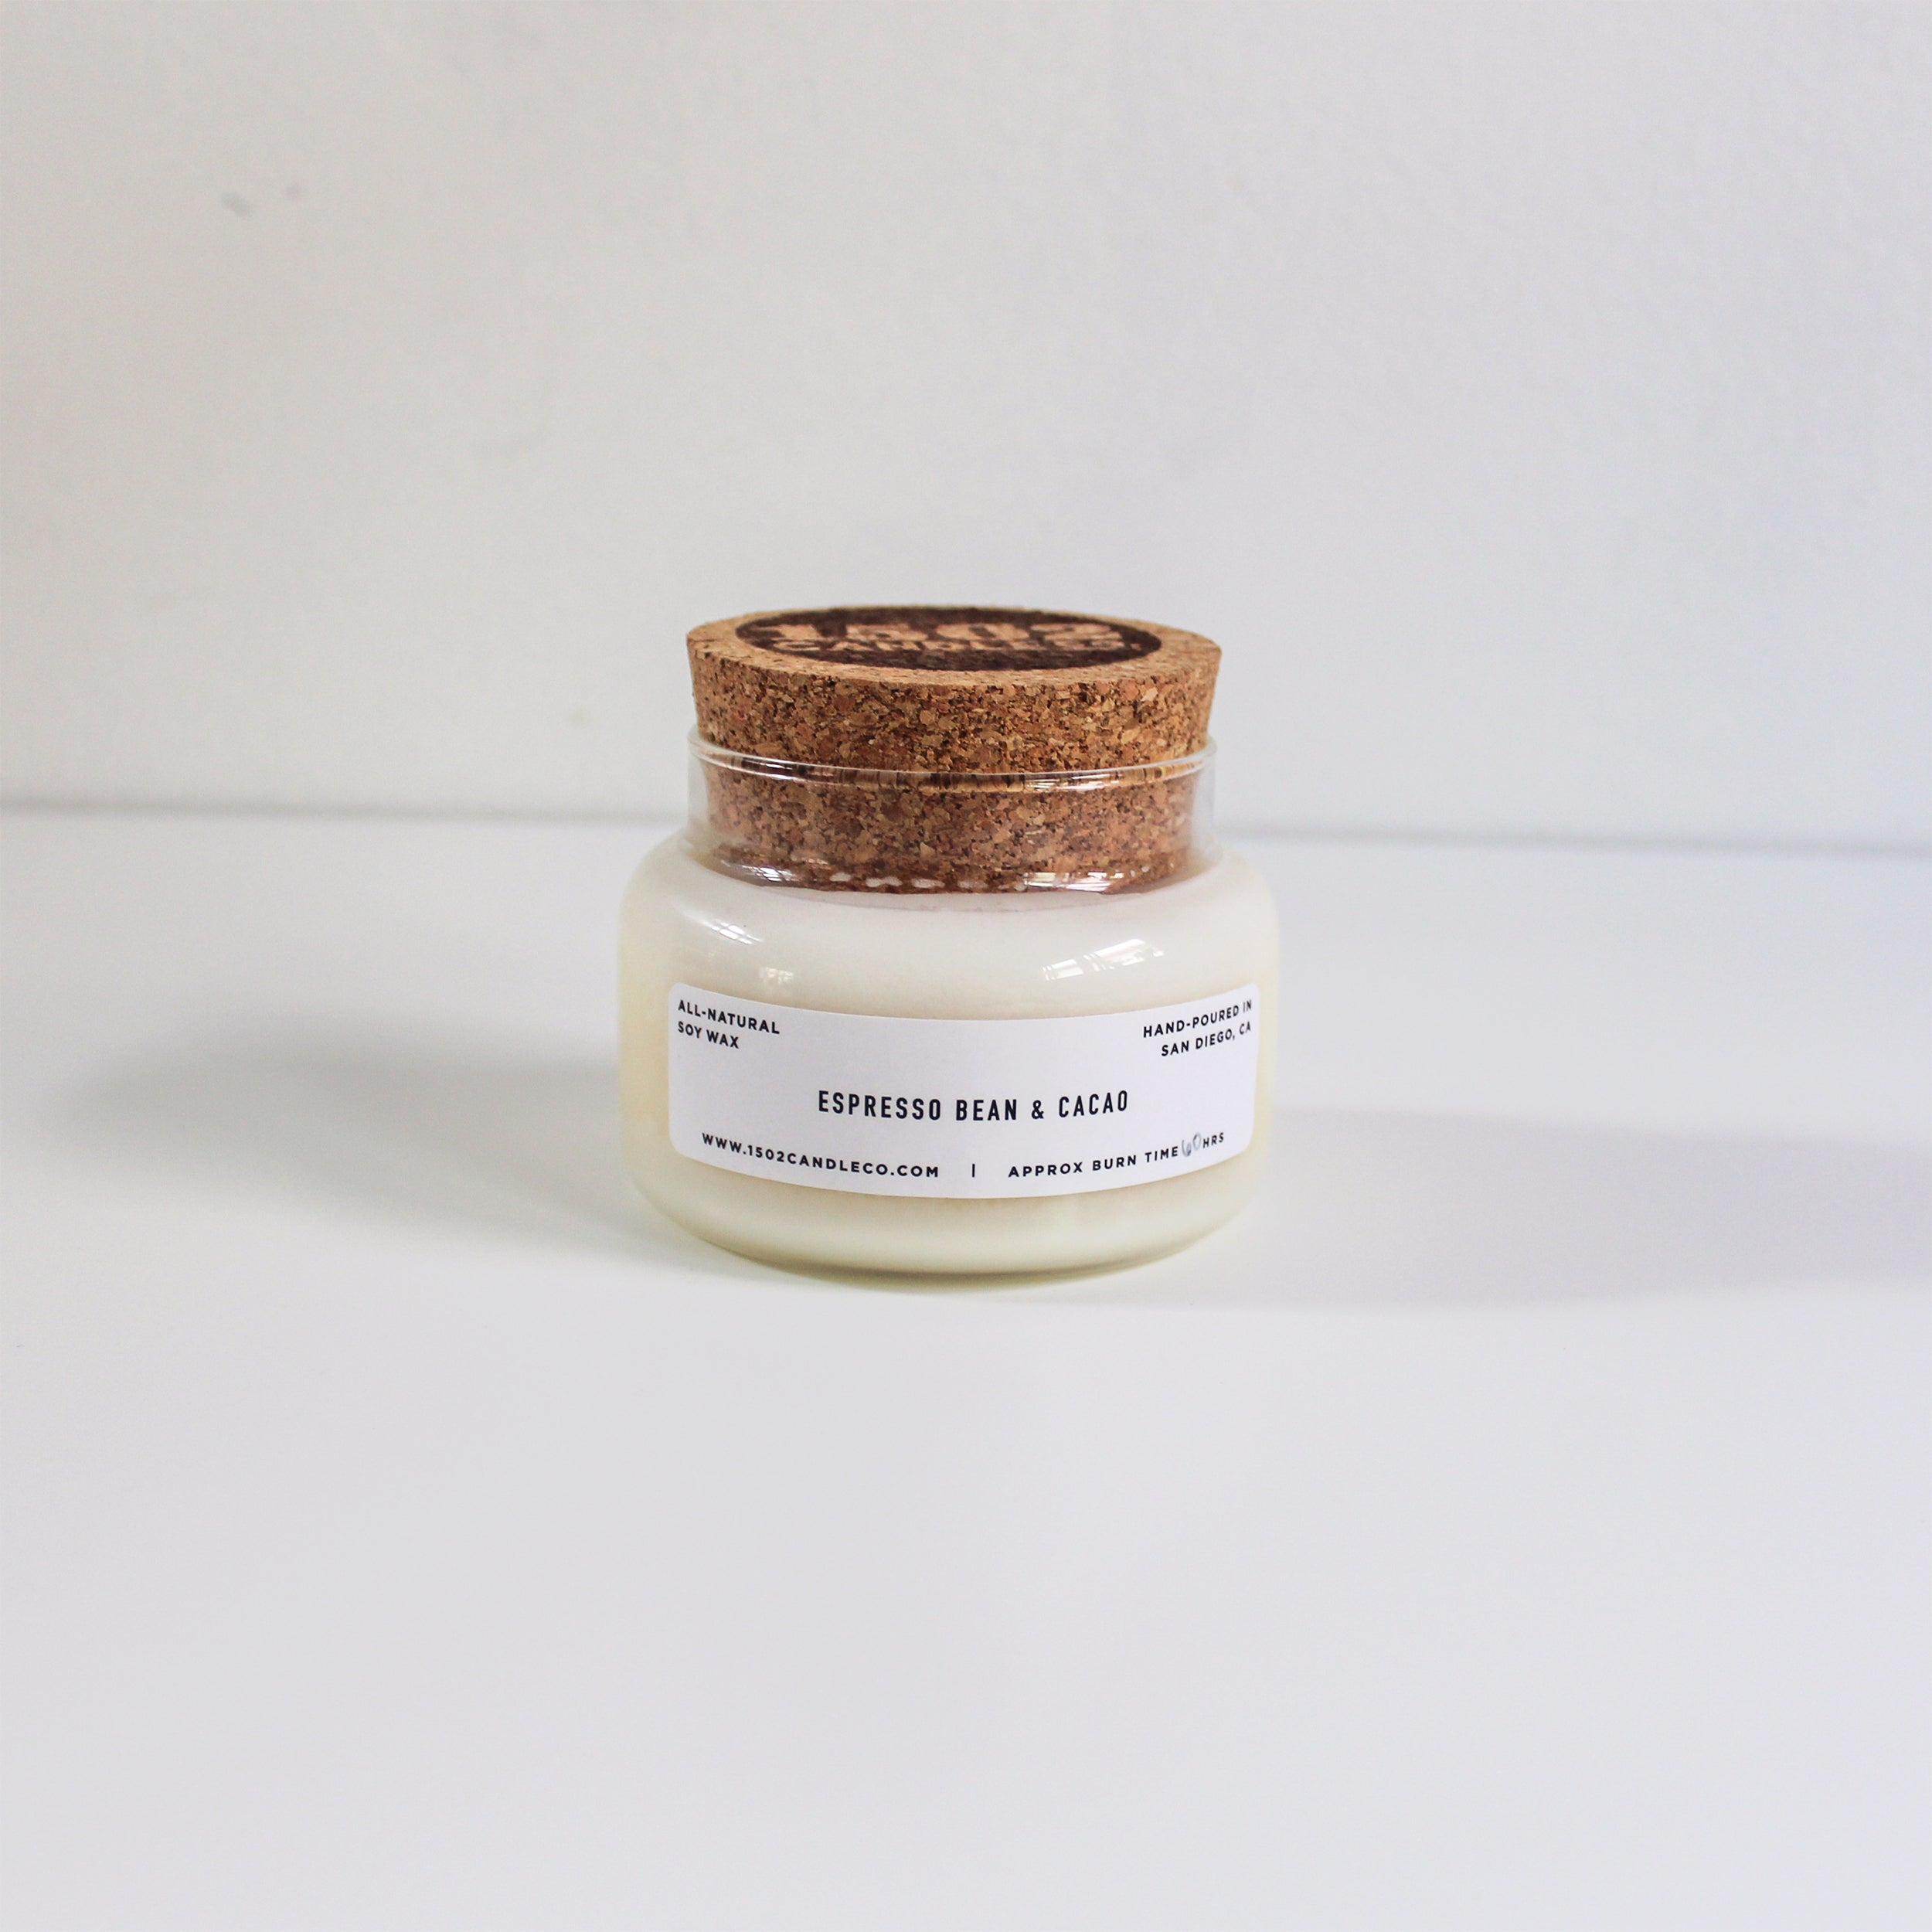 An epresson bean and cacao candle with cork lid sit on a white background.